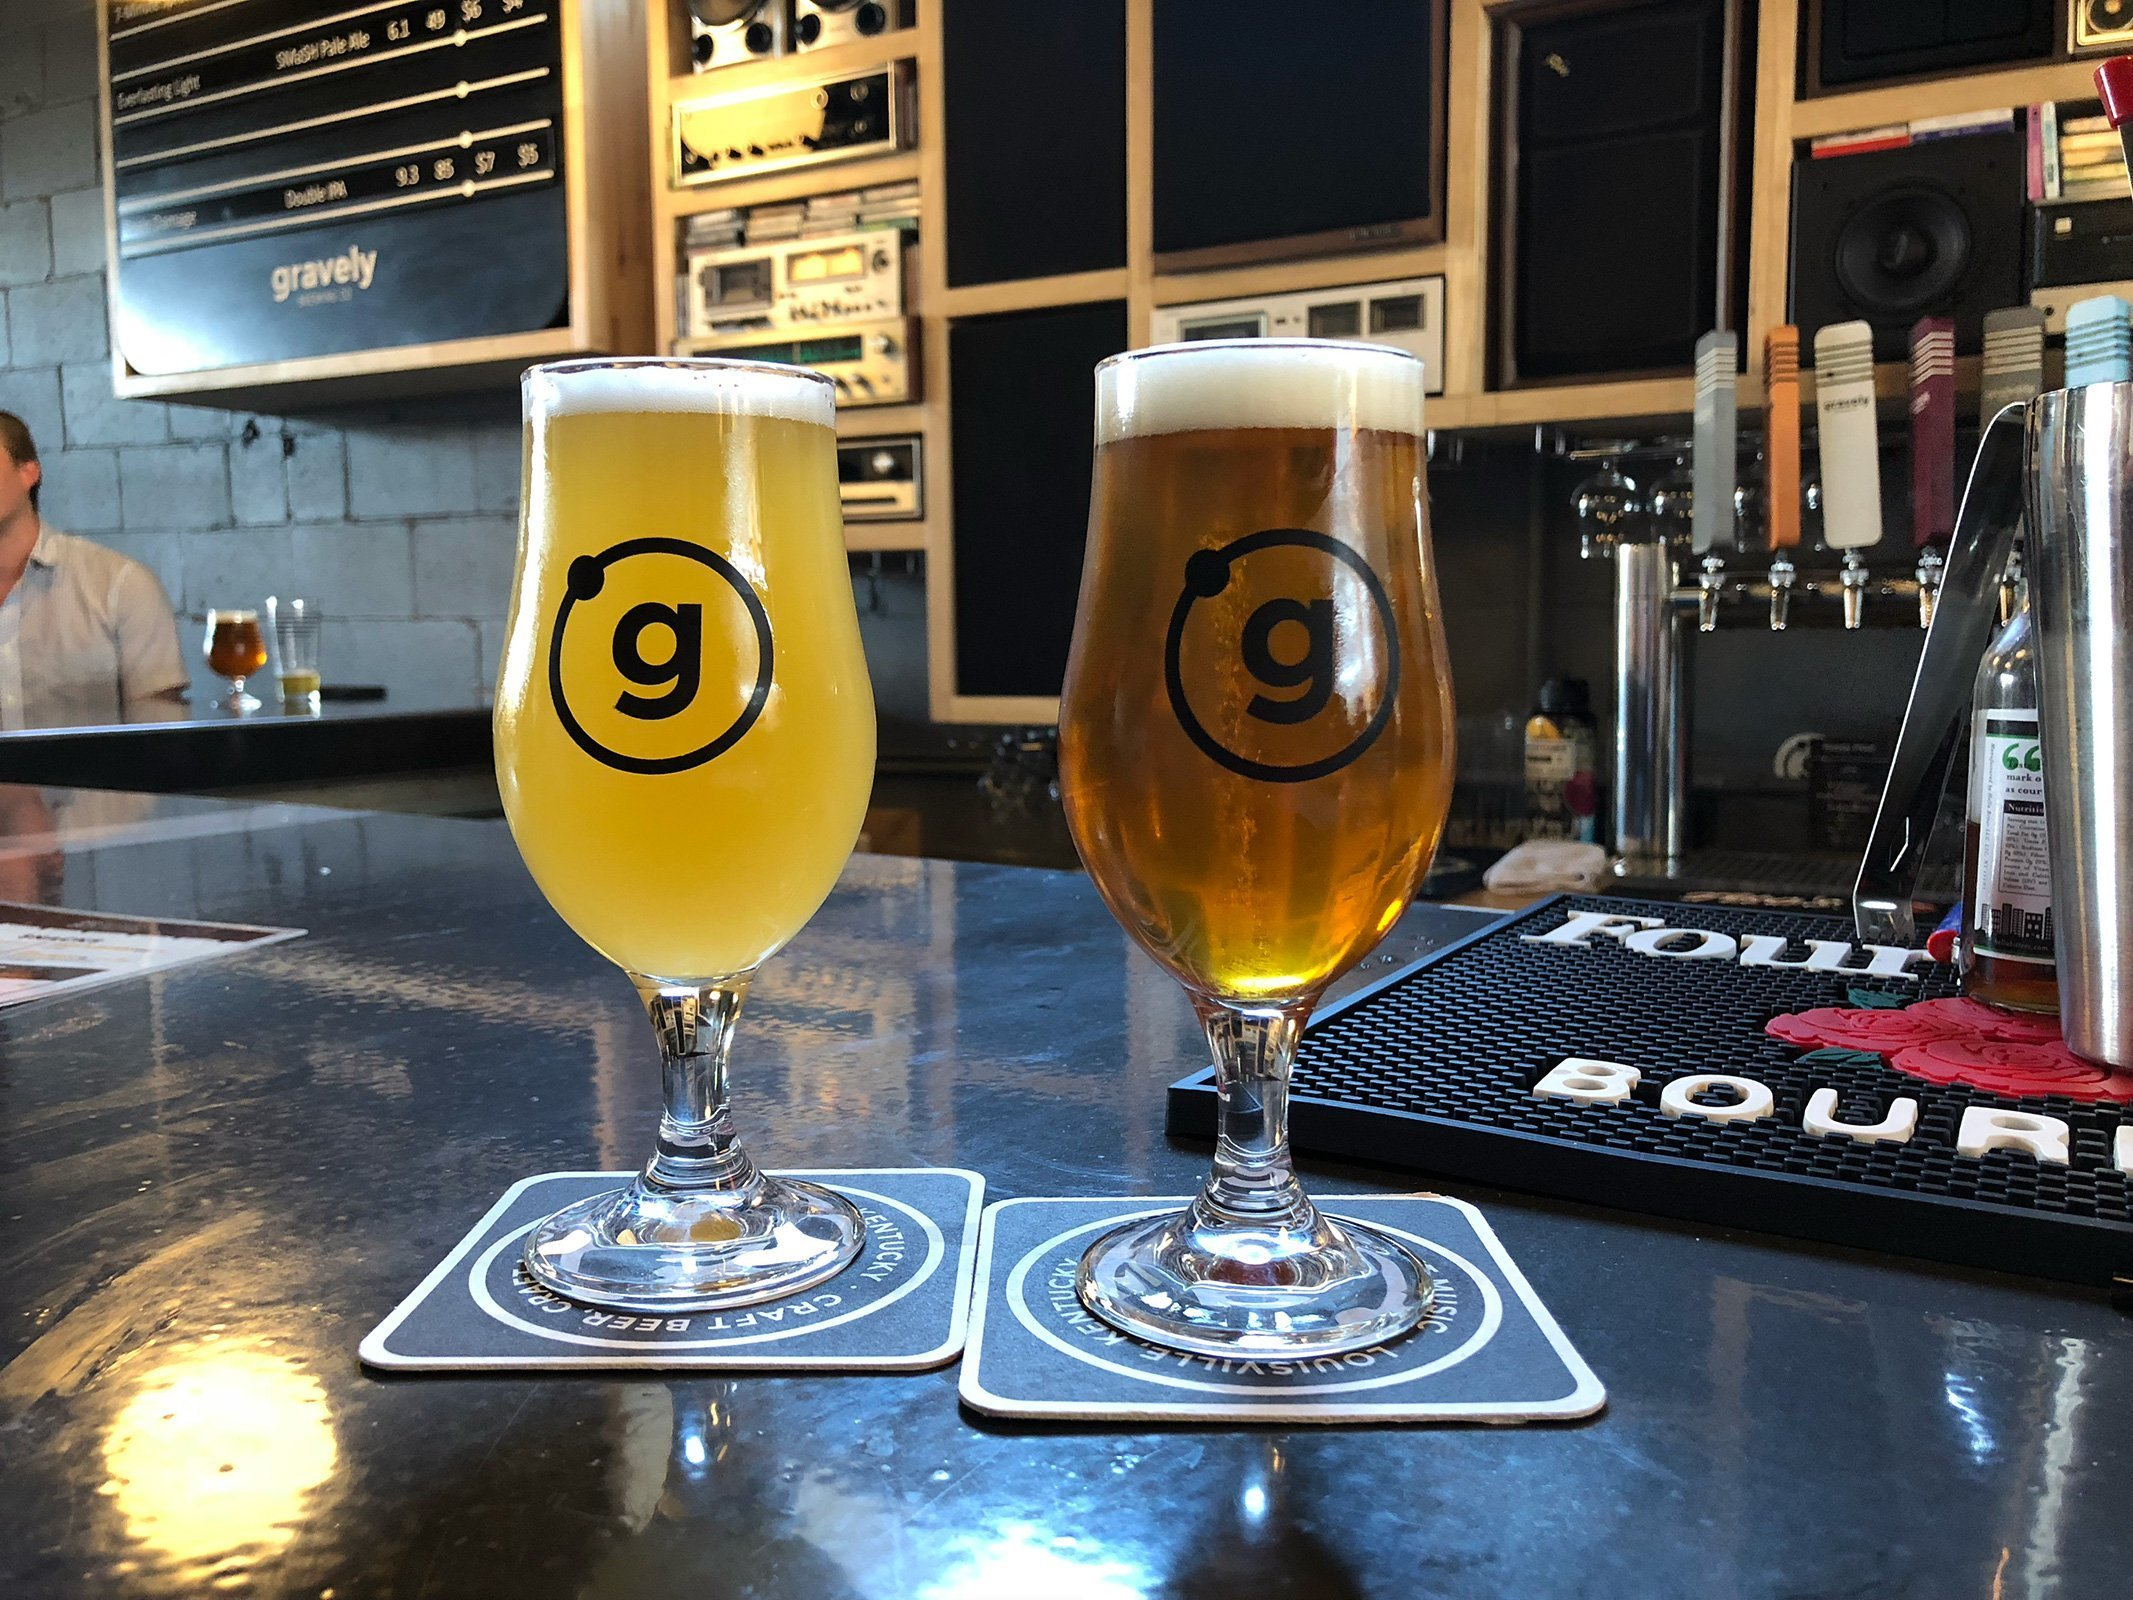 Gravely Brewing Co. in Louisville, KY by Jets Like Taxis / Hopsmash